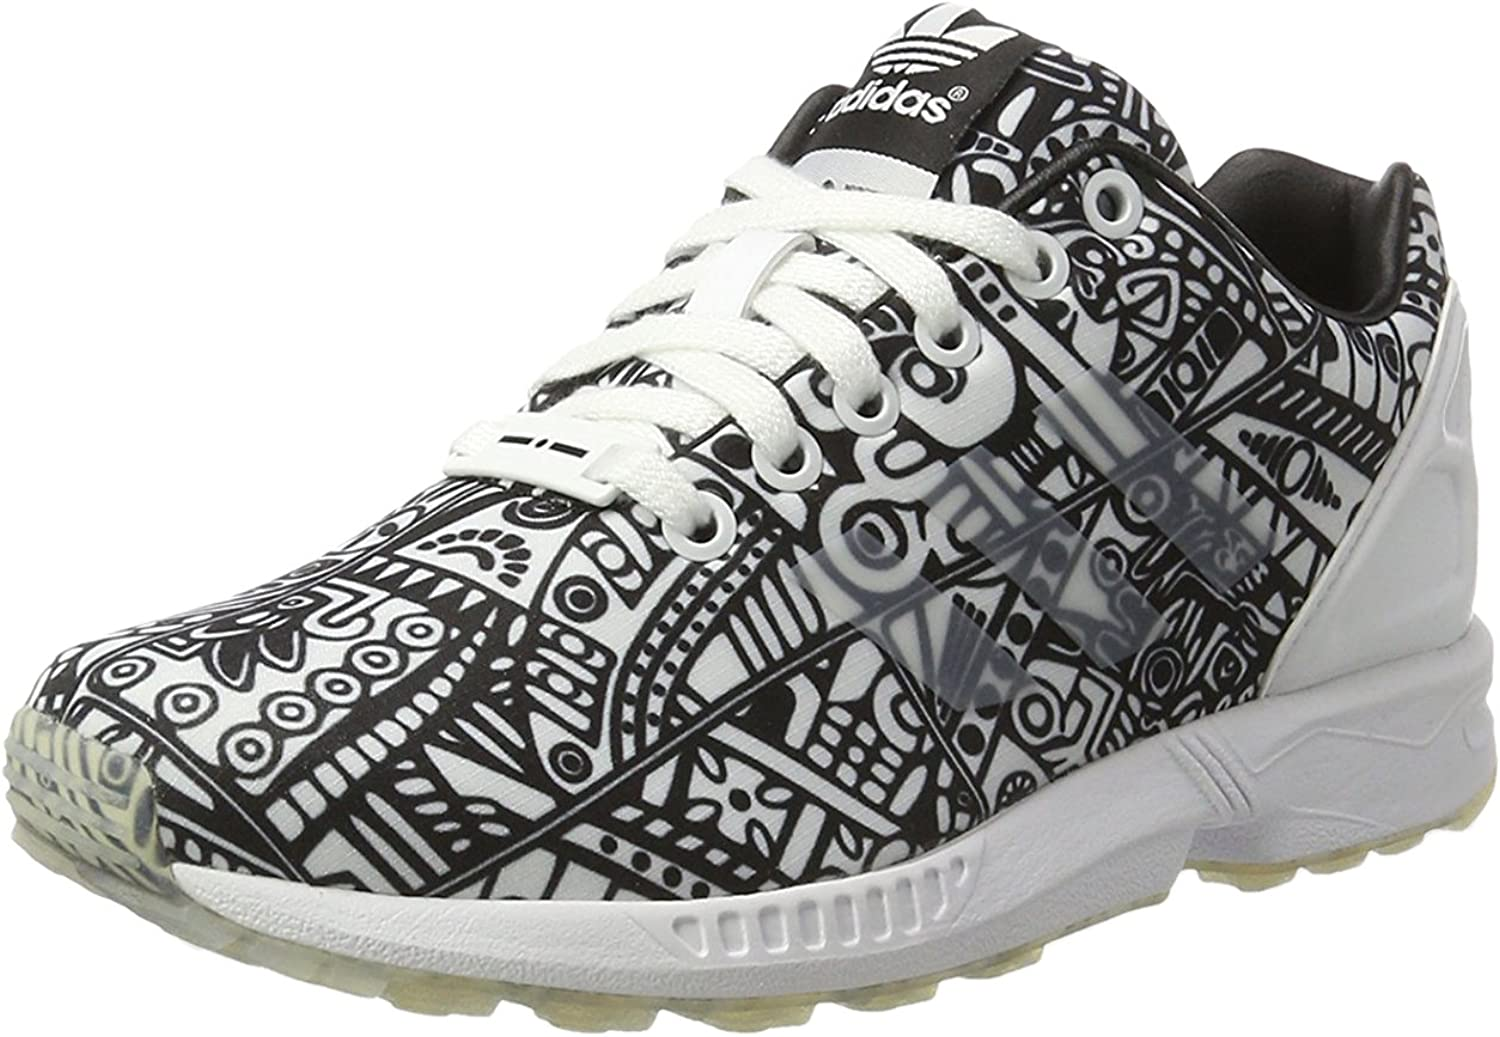 Adidas Zx Flux, Unisex Adults' Sneakers